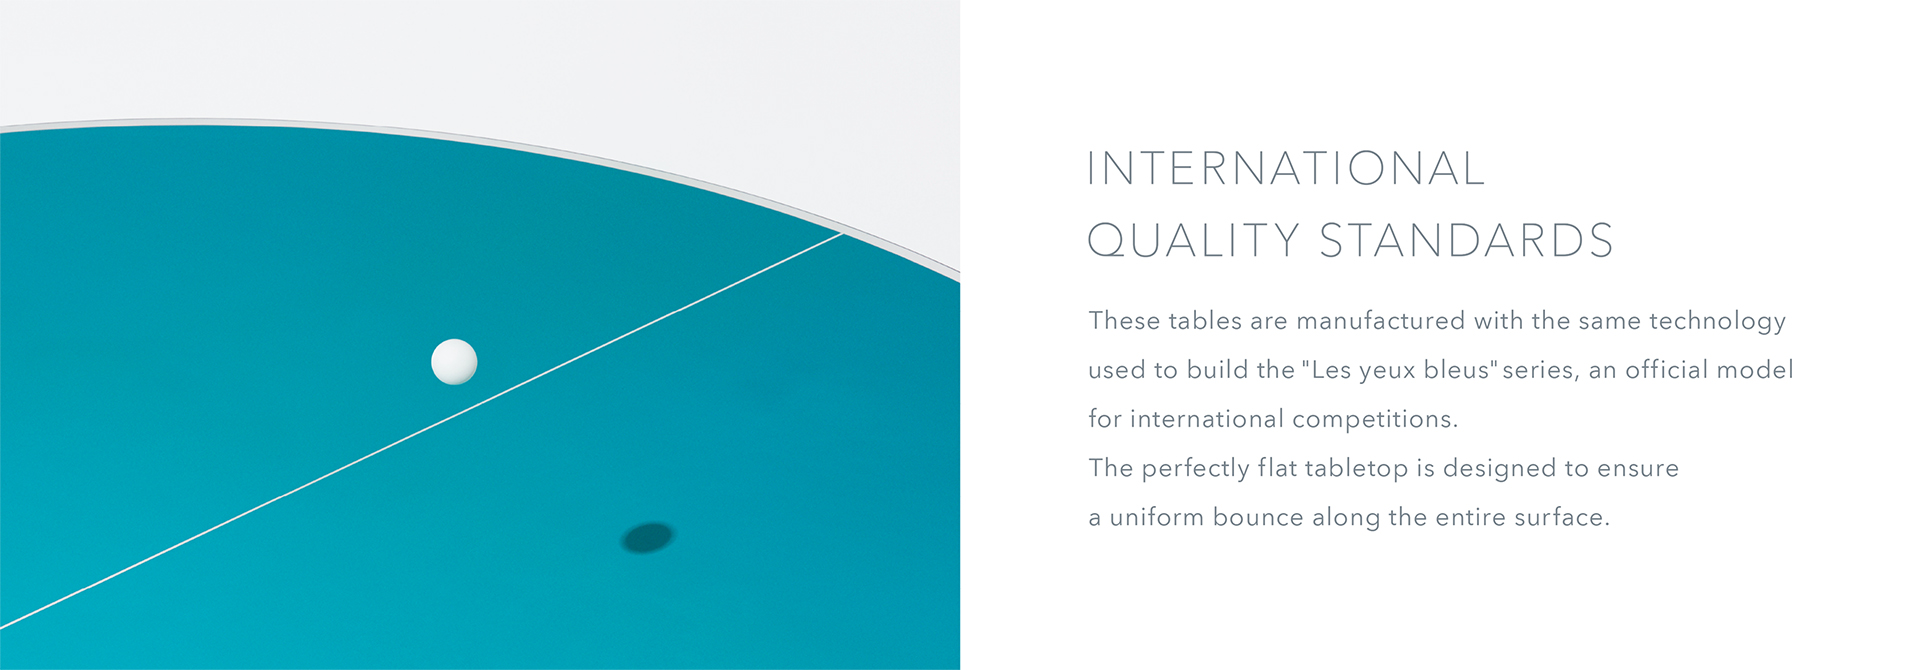 "International Quality Standards These tables are manufactured with the same technology used to build the ""Les yeux bleus"" series, an official model for international competitions. The perfectly flat tabletop is designed to ensure a uniform bounce along the entire surface."